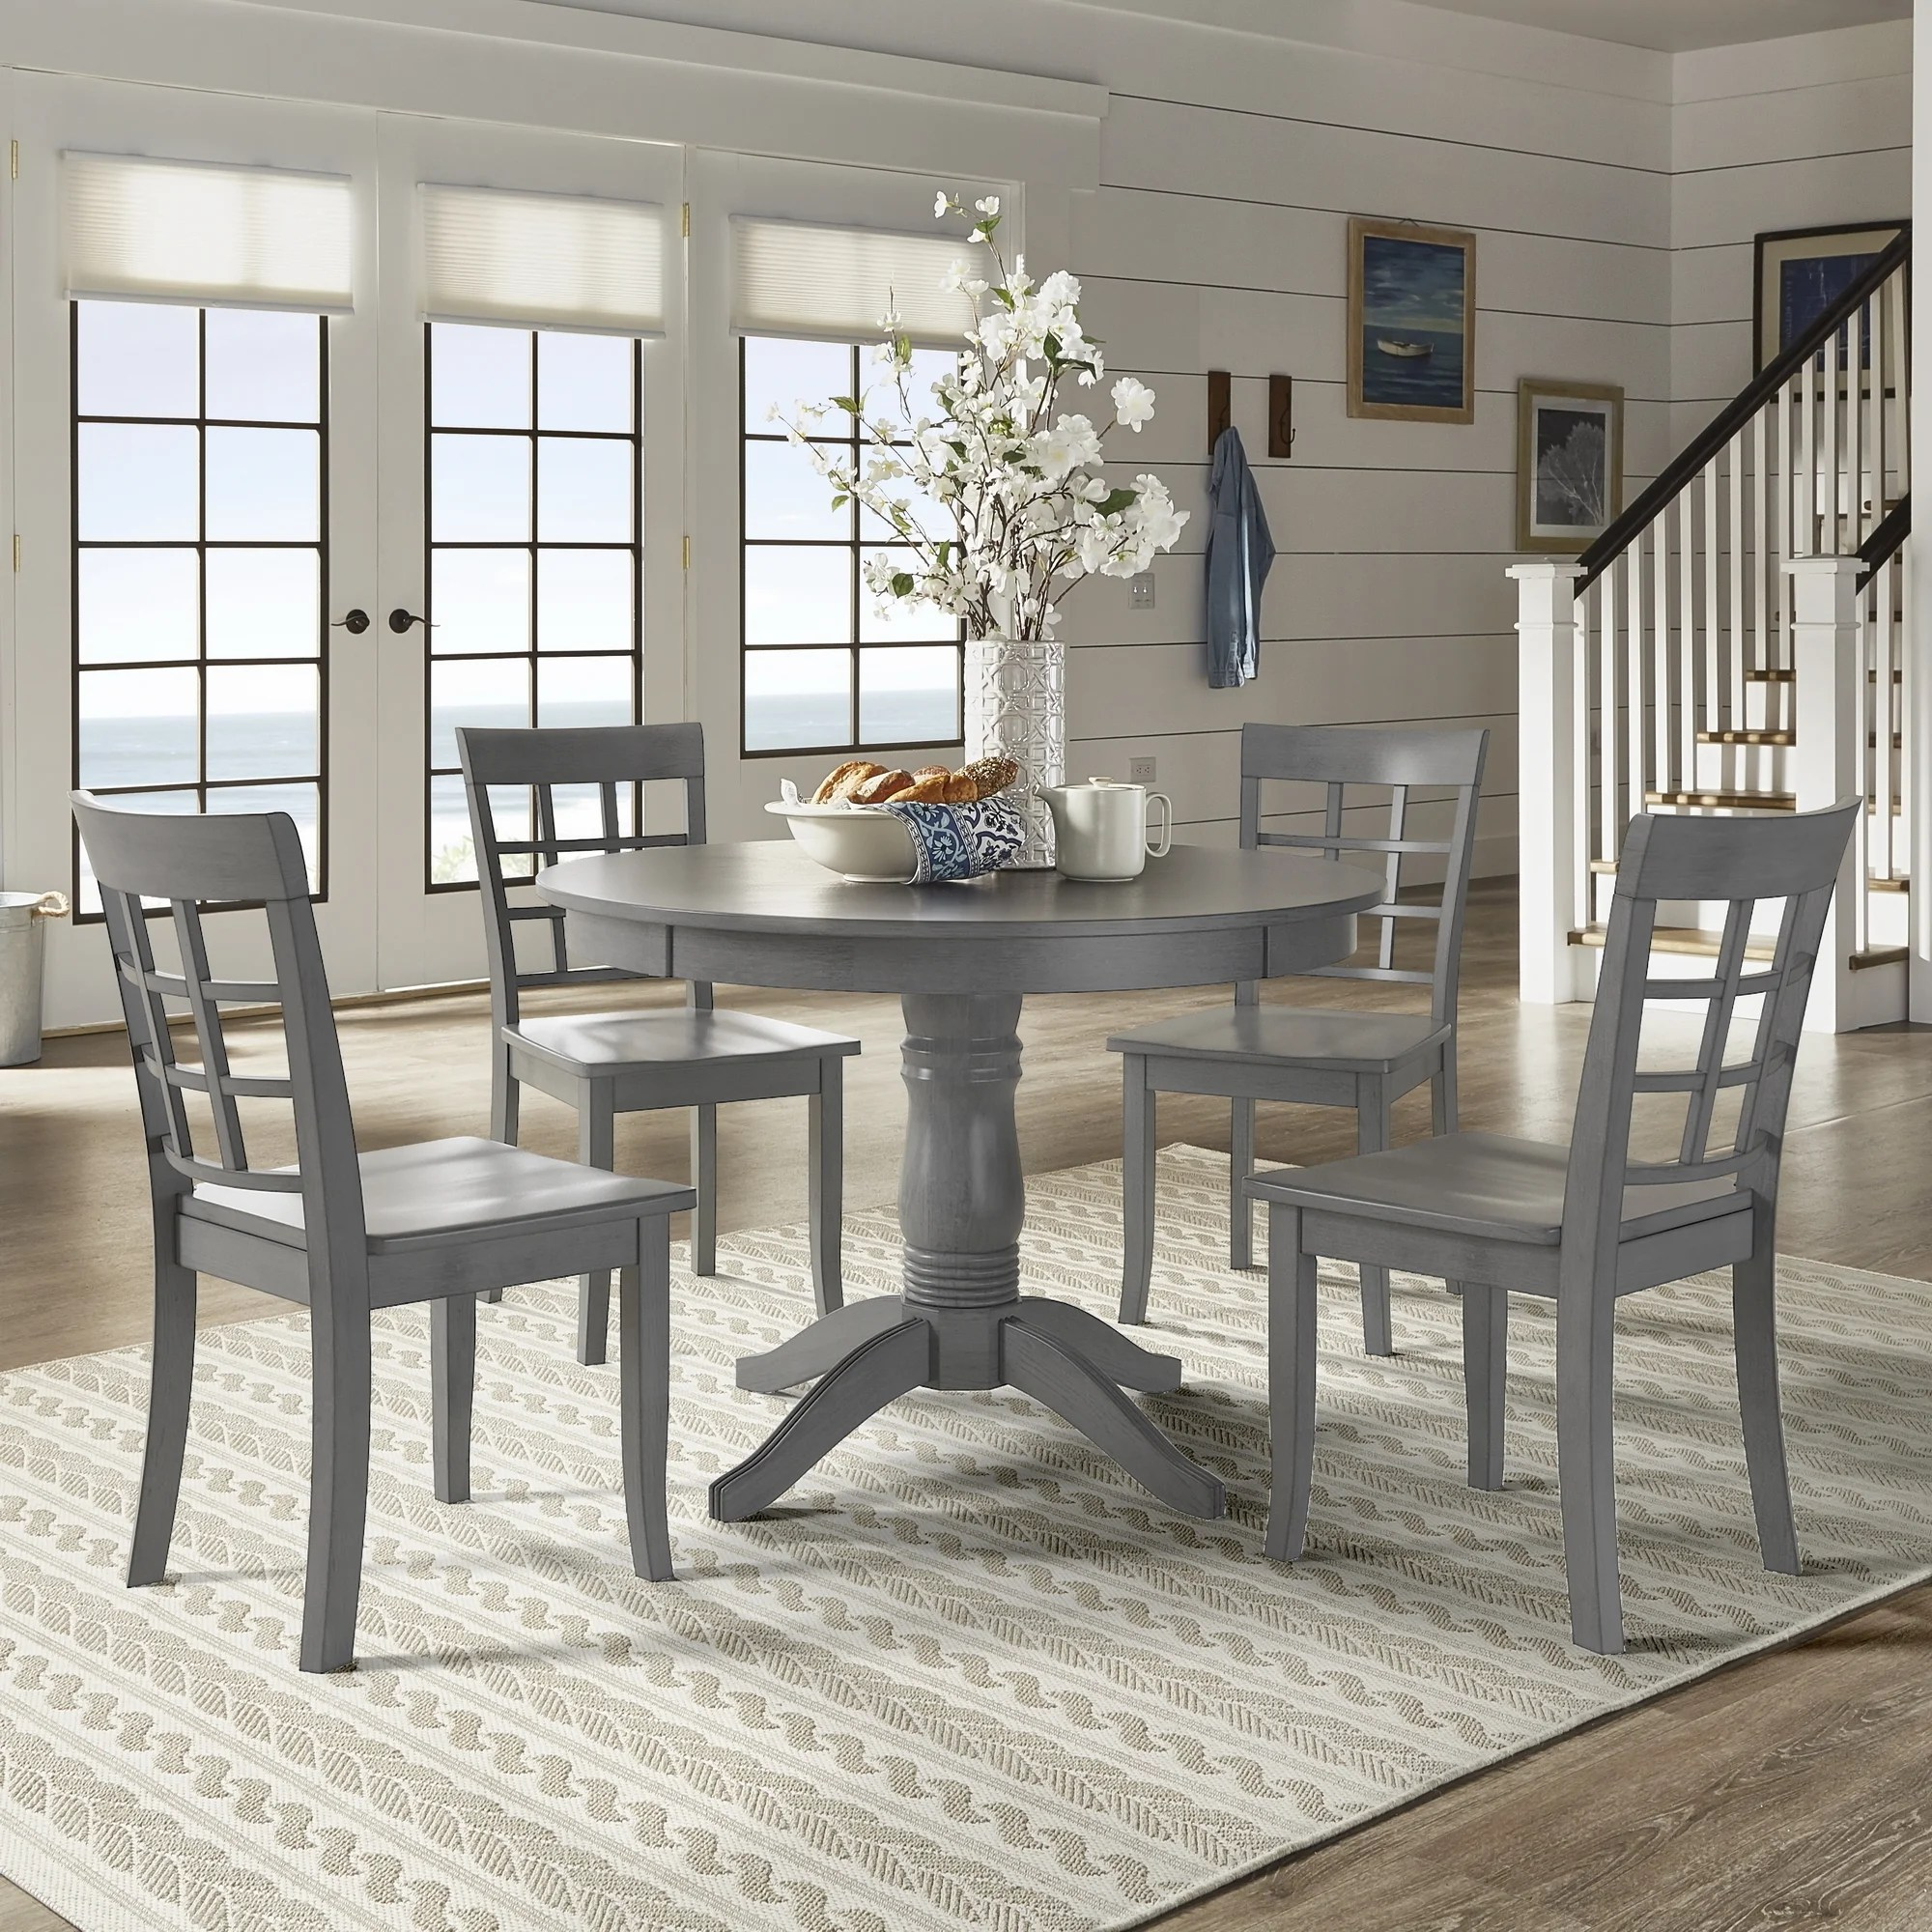 Viva Garage Floor Mats Wilmington Ii Round Pedestal Base Antique Grey 5 Piece Dining Set By Inspire Q Classic